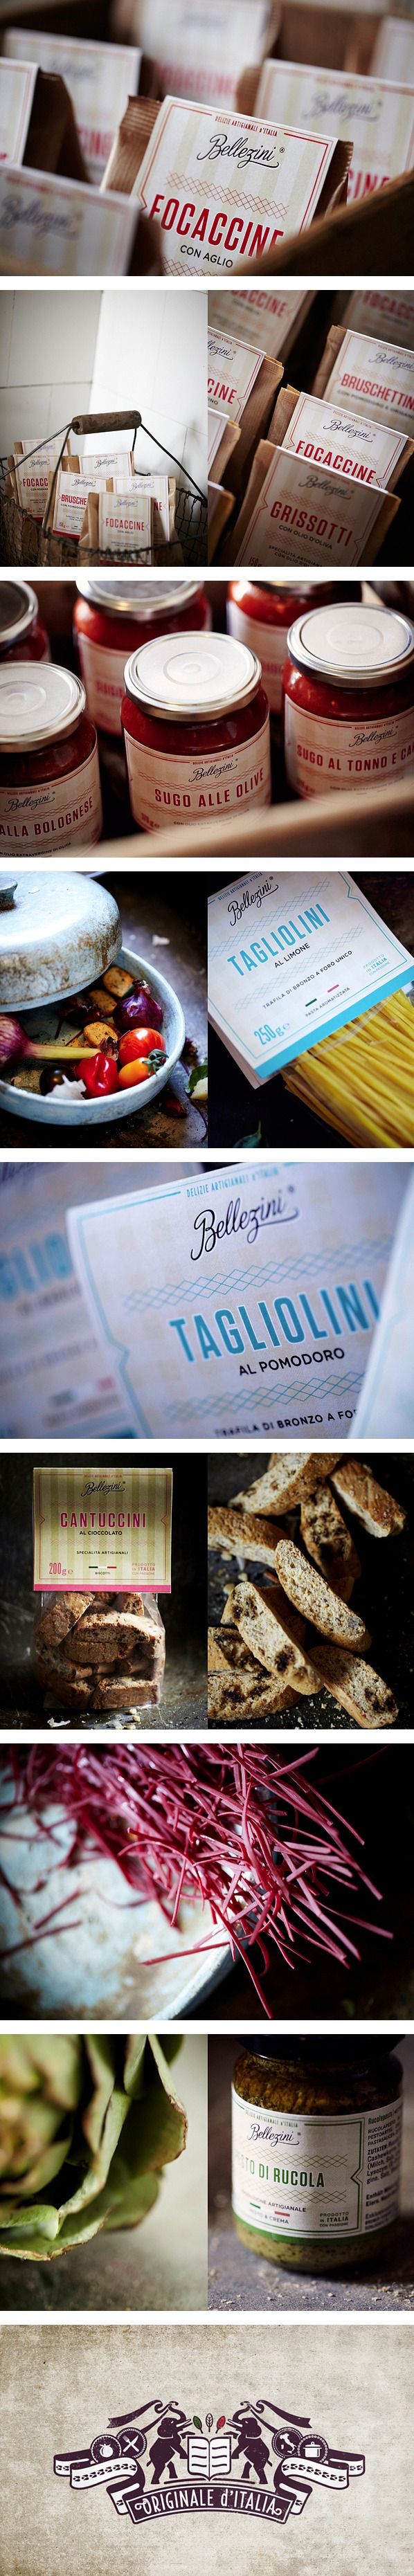 BELLEZINI Packaging by STUDIO CHAPEAUX #packaging #branding #marketing PD